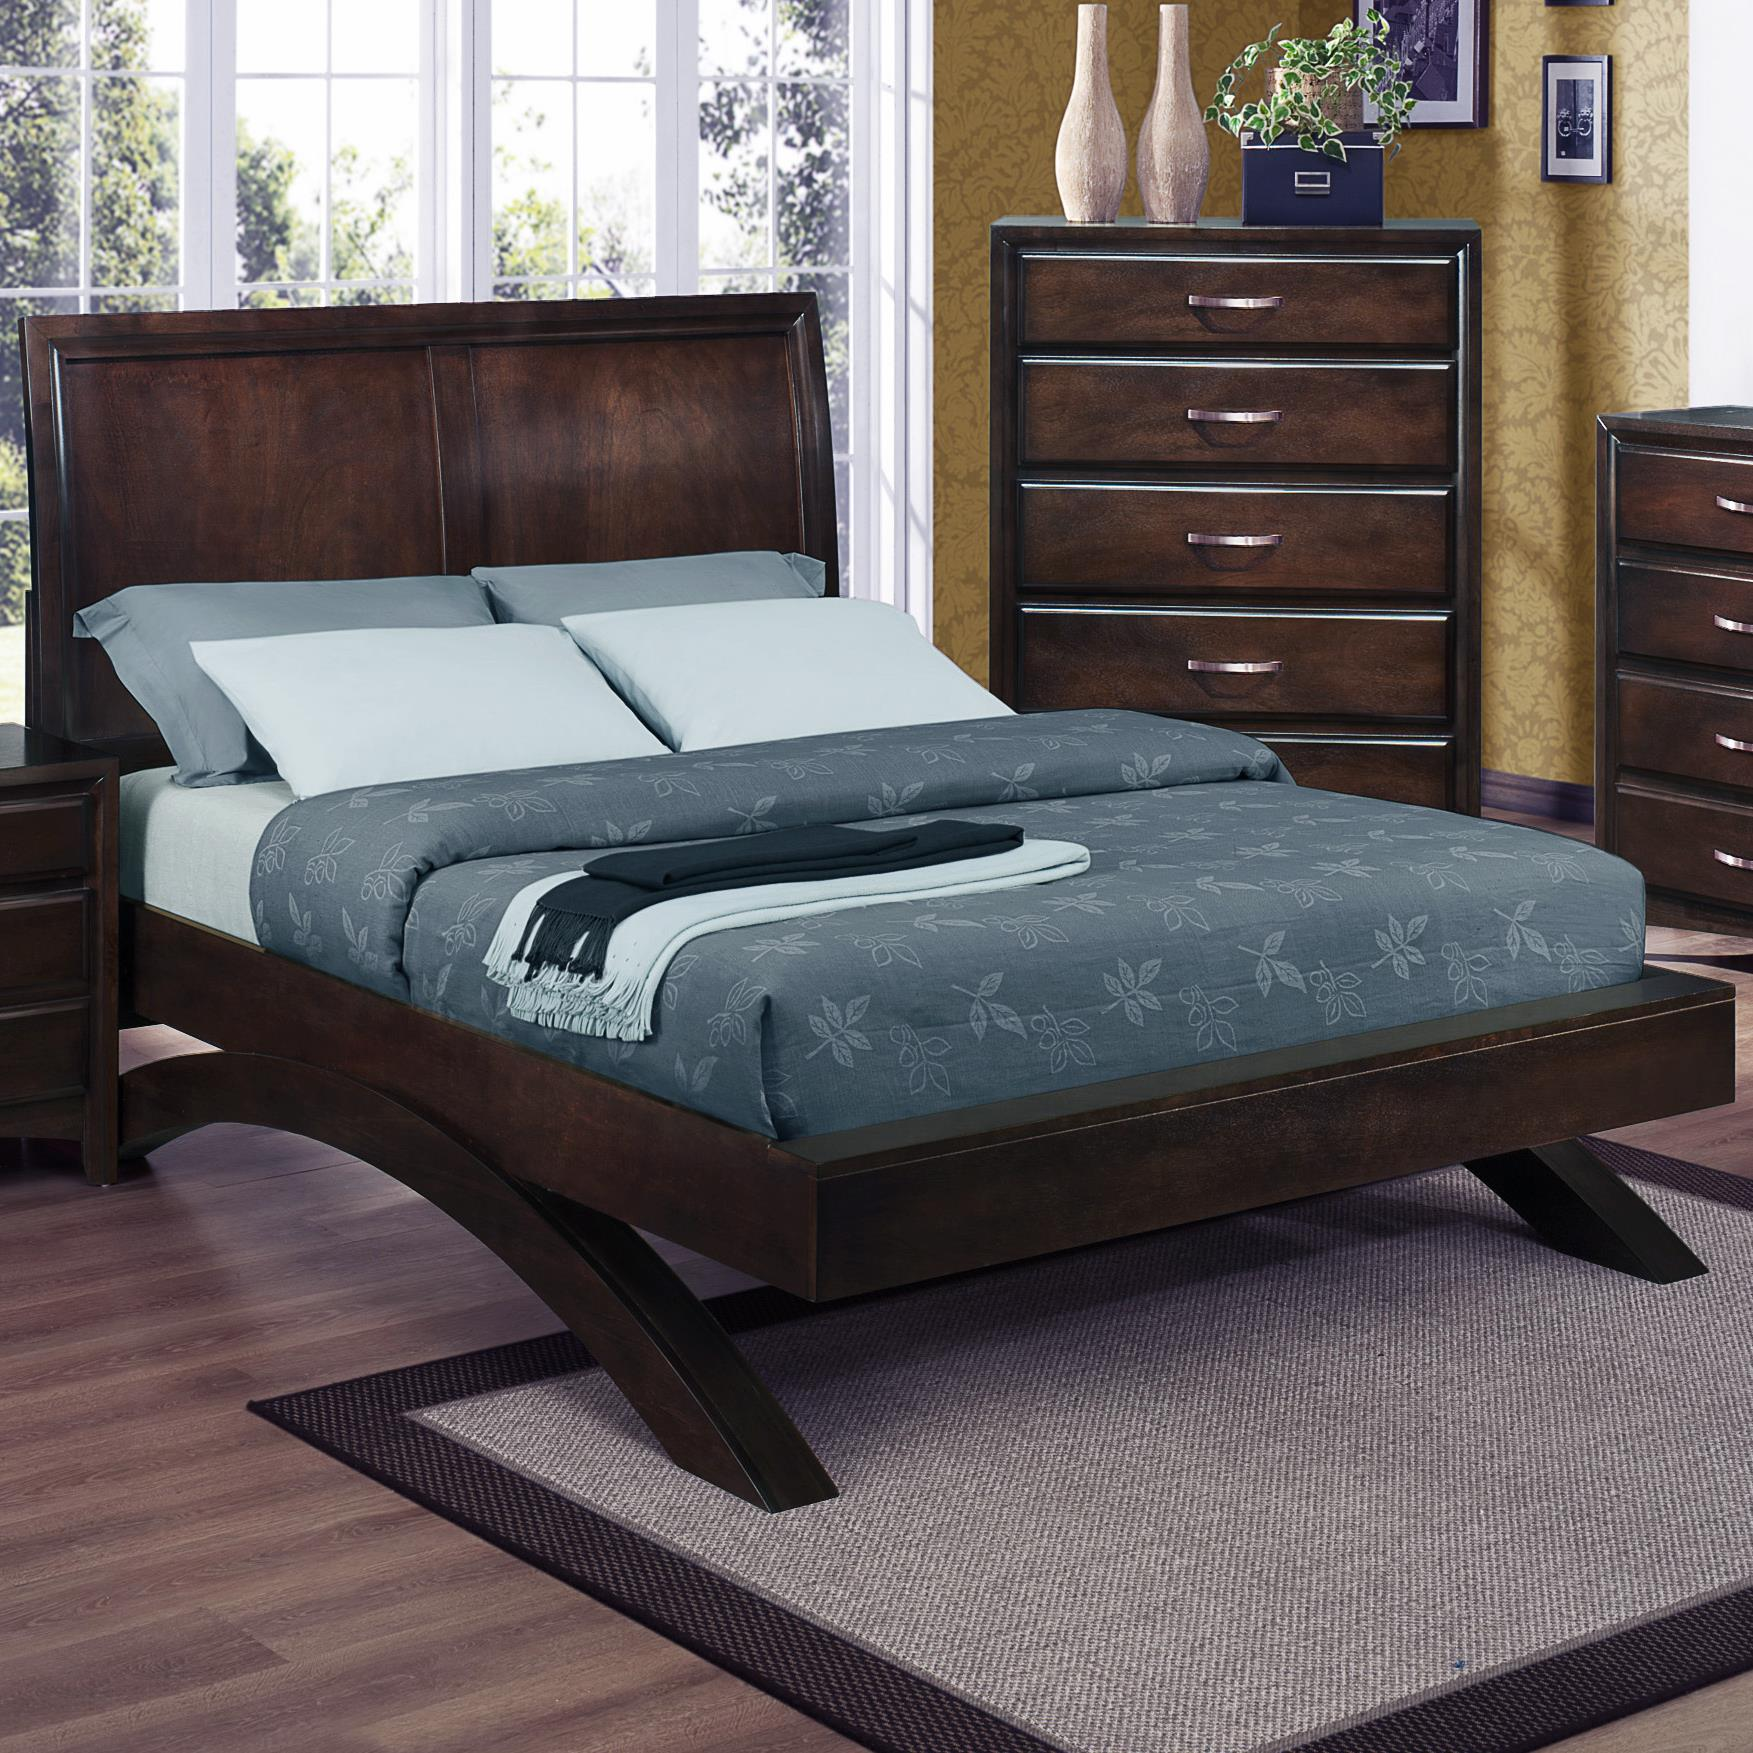 Crown Mark Vera California King Platform Bed - Item Number: B6150-K-BASE-N+K-HB-N+CK-RAIL-N